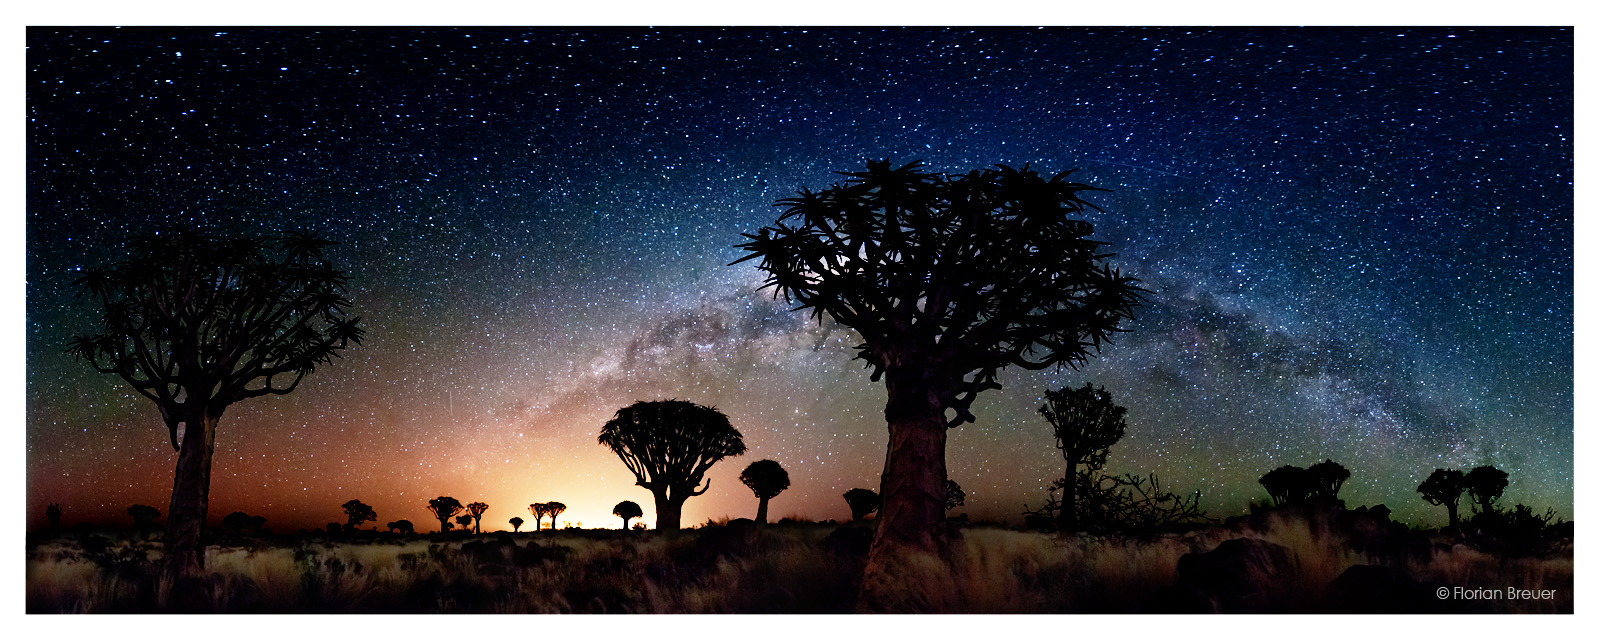 Namibian quiver trees and the glow of a galaxy - Bad